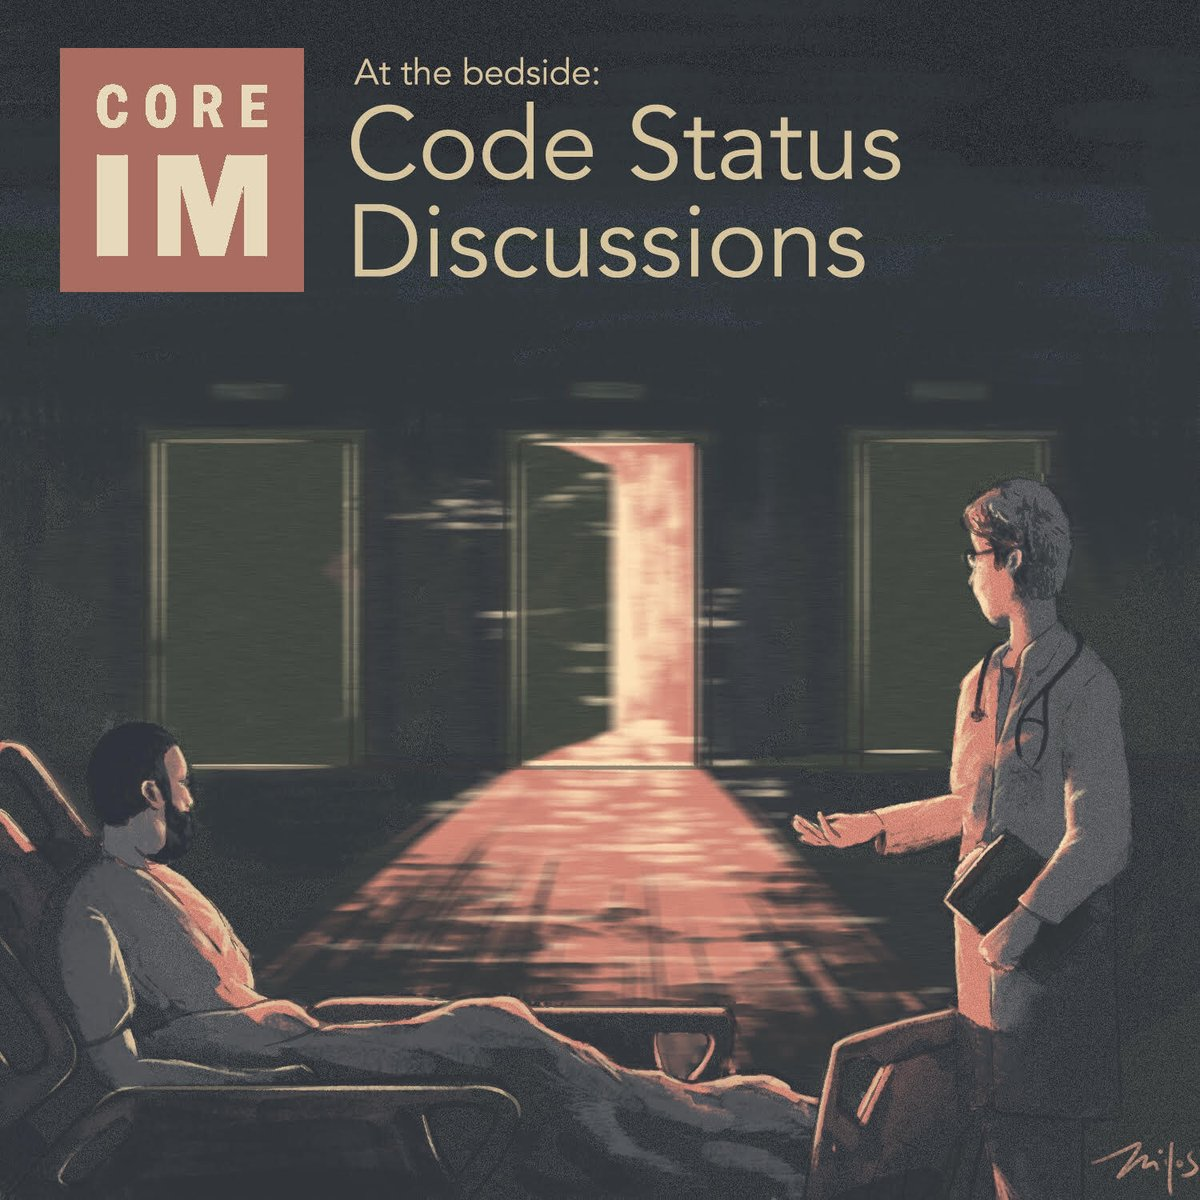 🚨New Episode: Code Status 🚨 A very #practical episode on nuanced ways to navigate something we do everyday! 1/ Listen 🎧: link.chtbl.com/CodeStatus